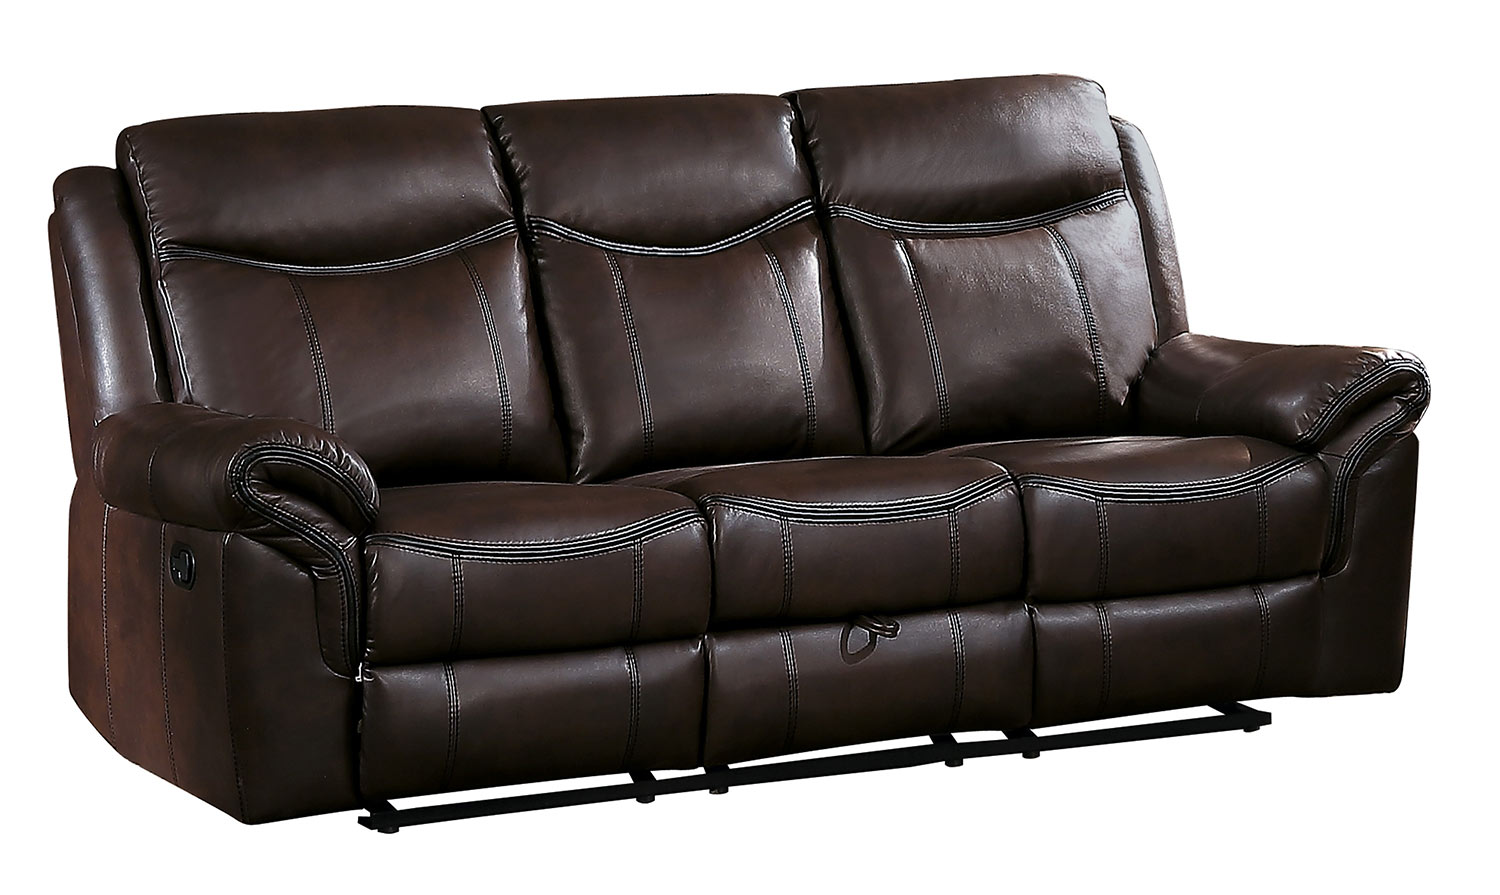 Homelegance Aram Double Reclining Sofa with Drop-Down Table and Center Storage Drawer - Dark Brown AireHyde Match